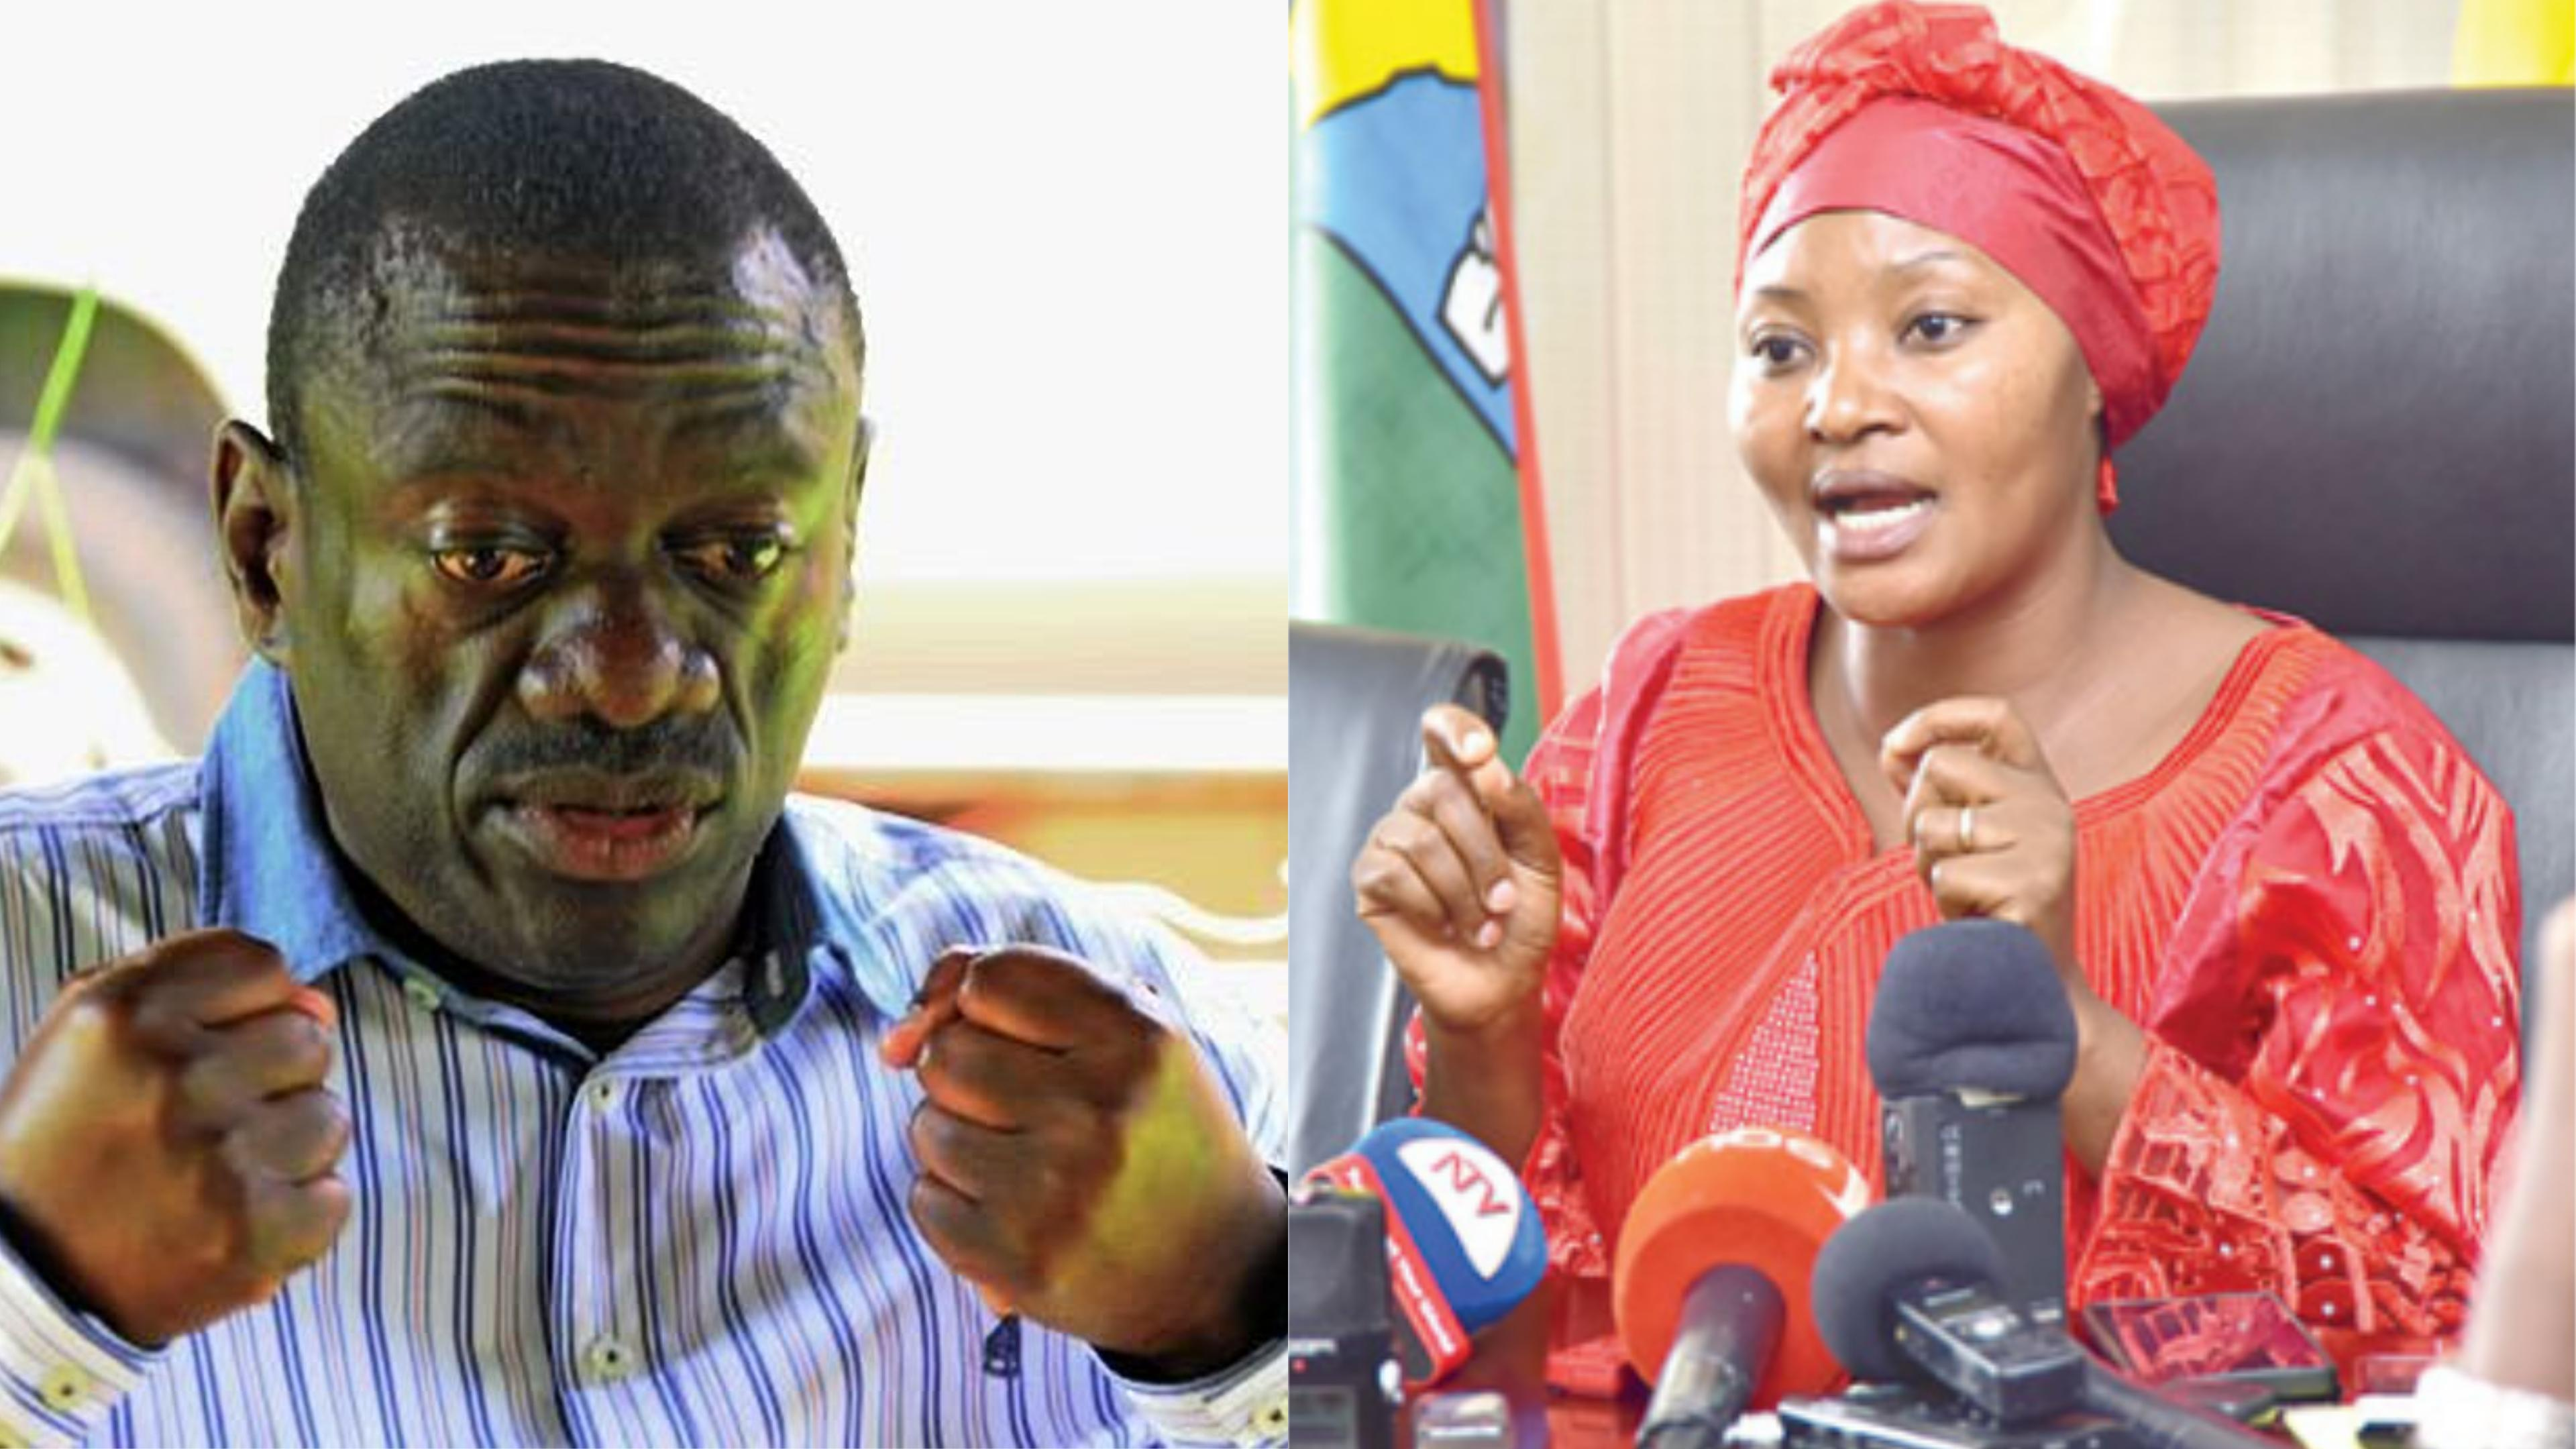 Ex-FDC Party President, Dr. Kiiza Besigye has lashed out at ex-LoP Winnie Kiiza for her deliberations on the recent reshuffle by Patrick Amuriat that dropped her for Betty Aol Ochan (PML Daily PHOTO)